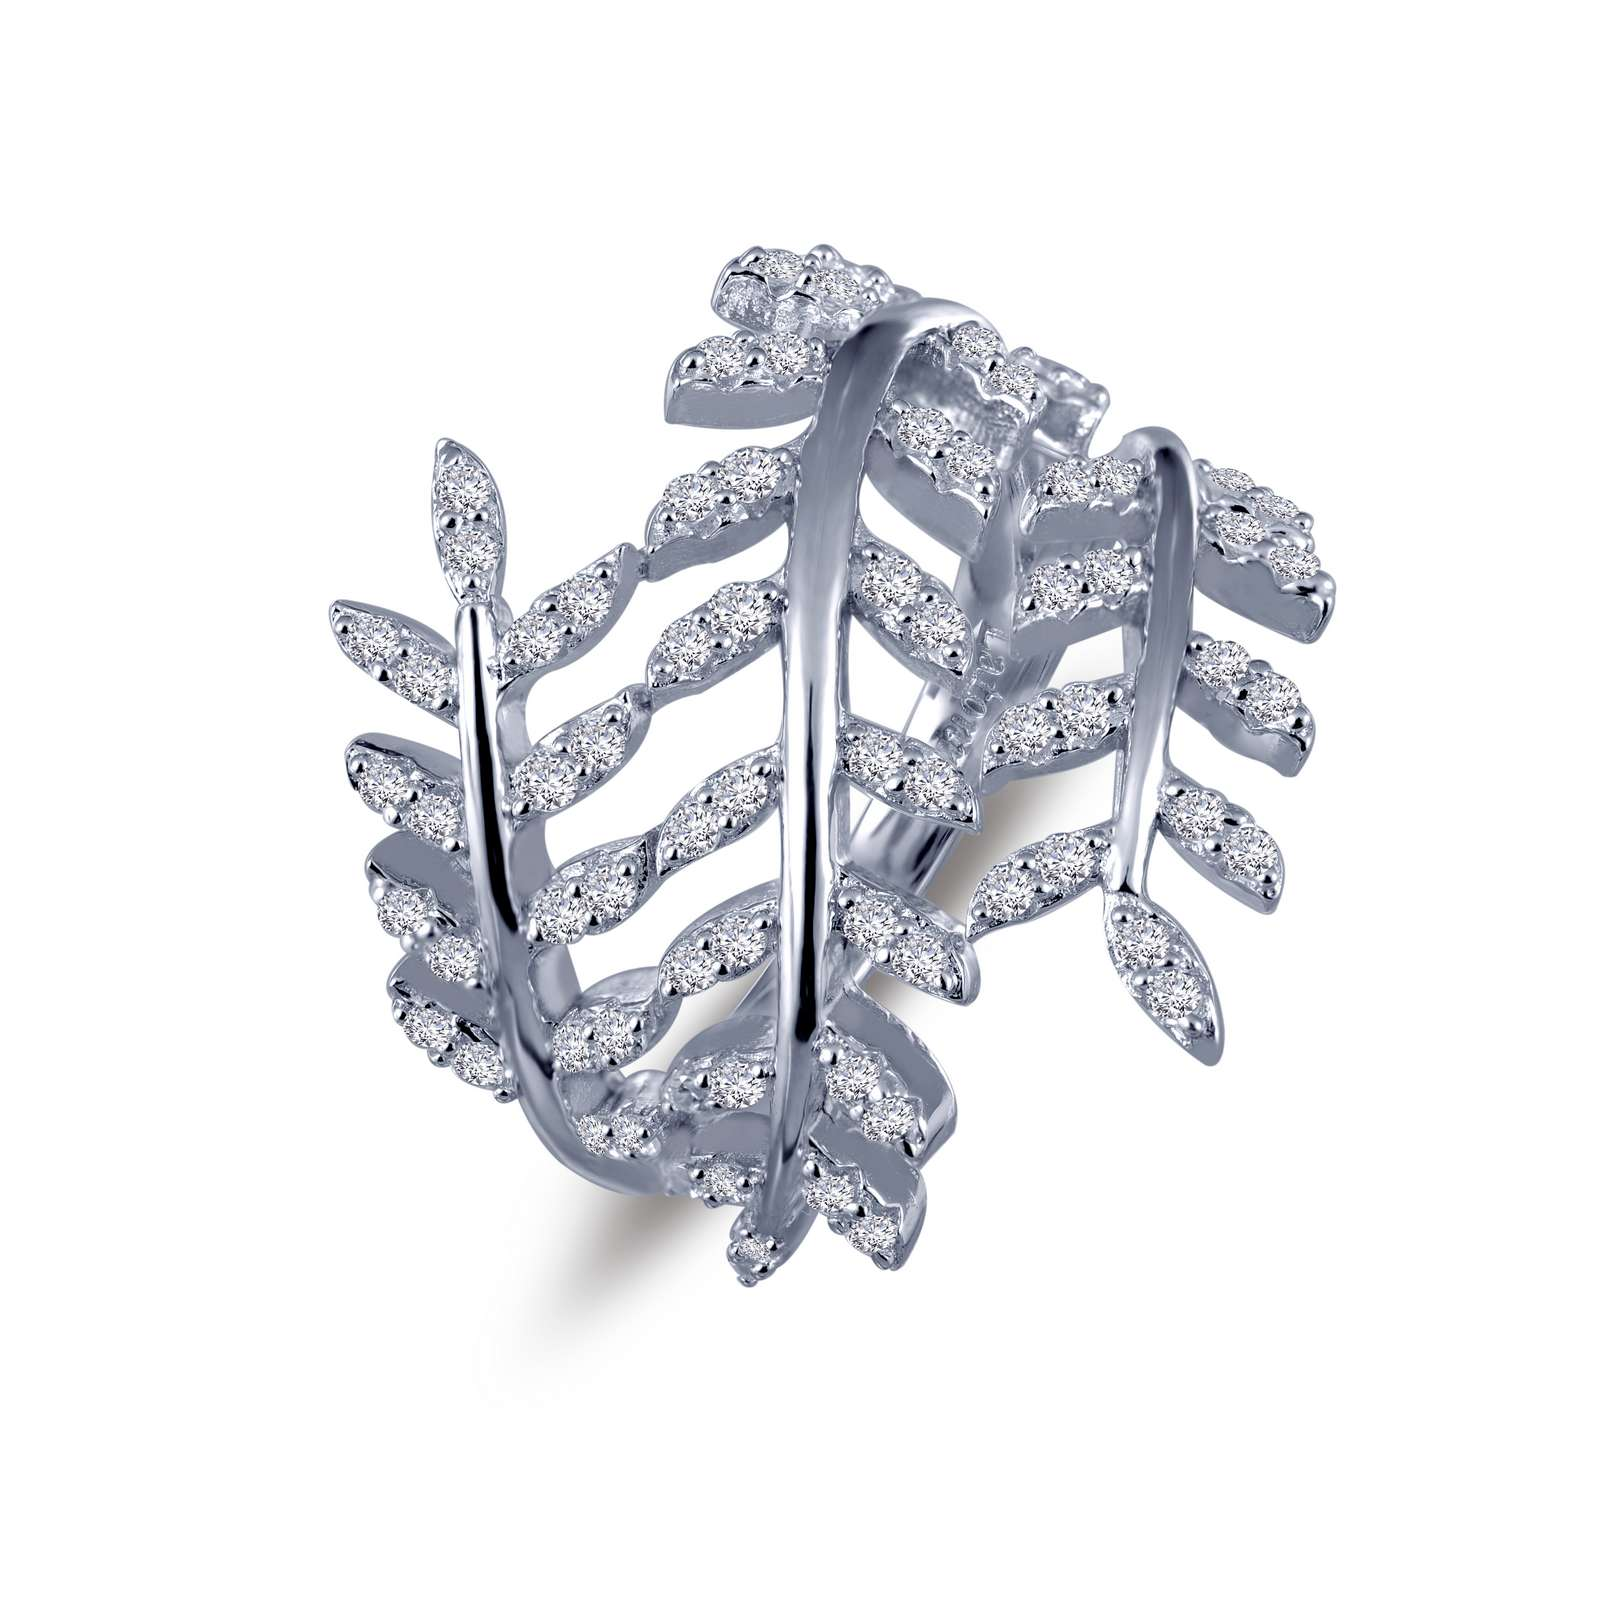 Pave Glam Simulated Diamond Platinum Ring by Lafonn